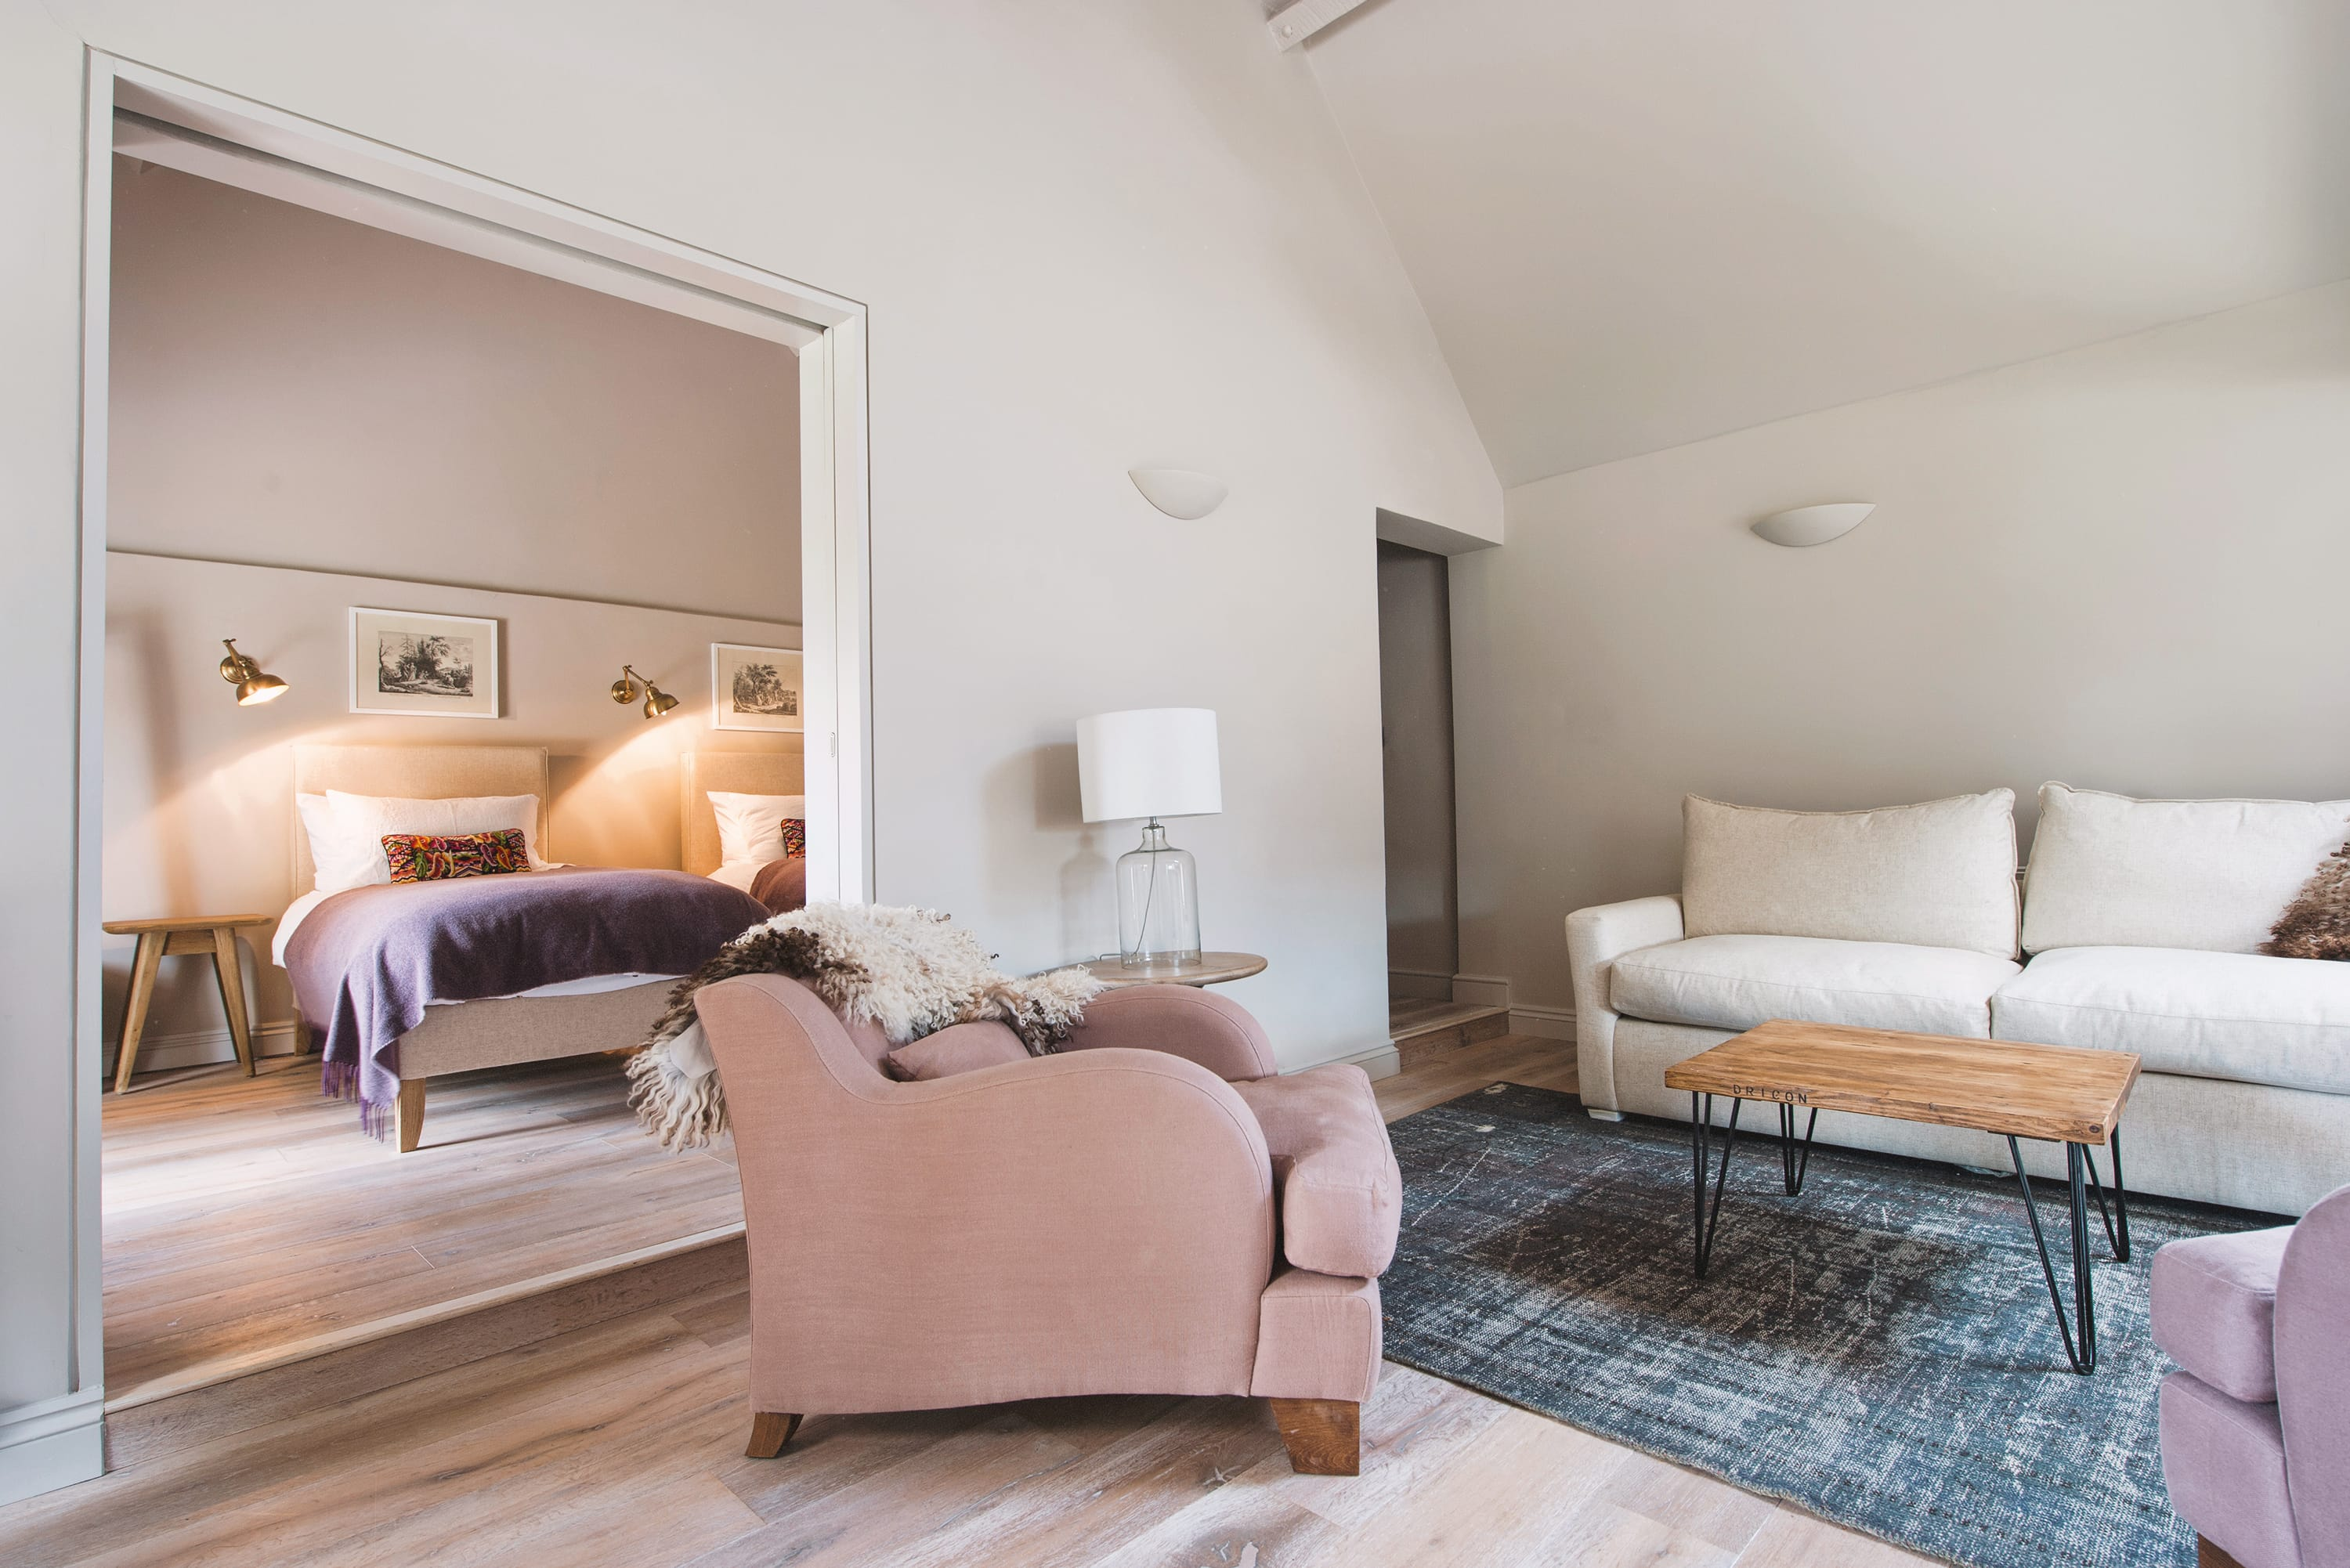 Living space with bedroom in the background